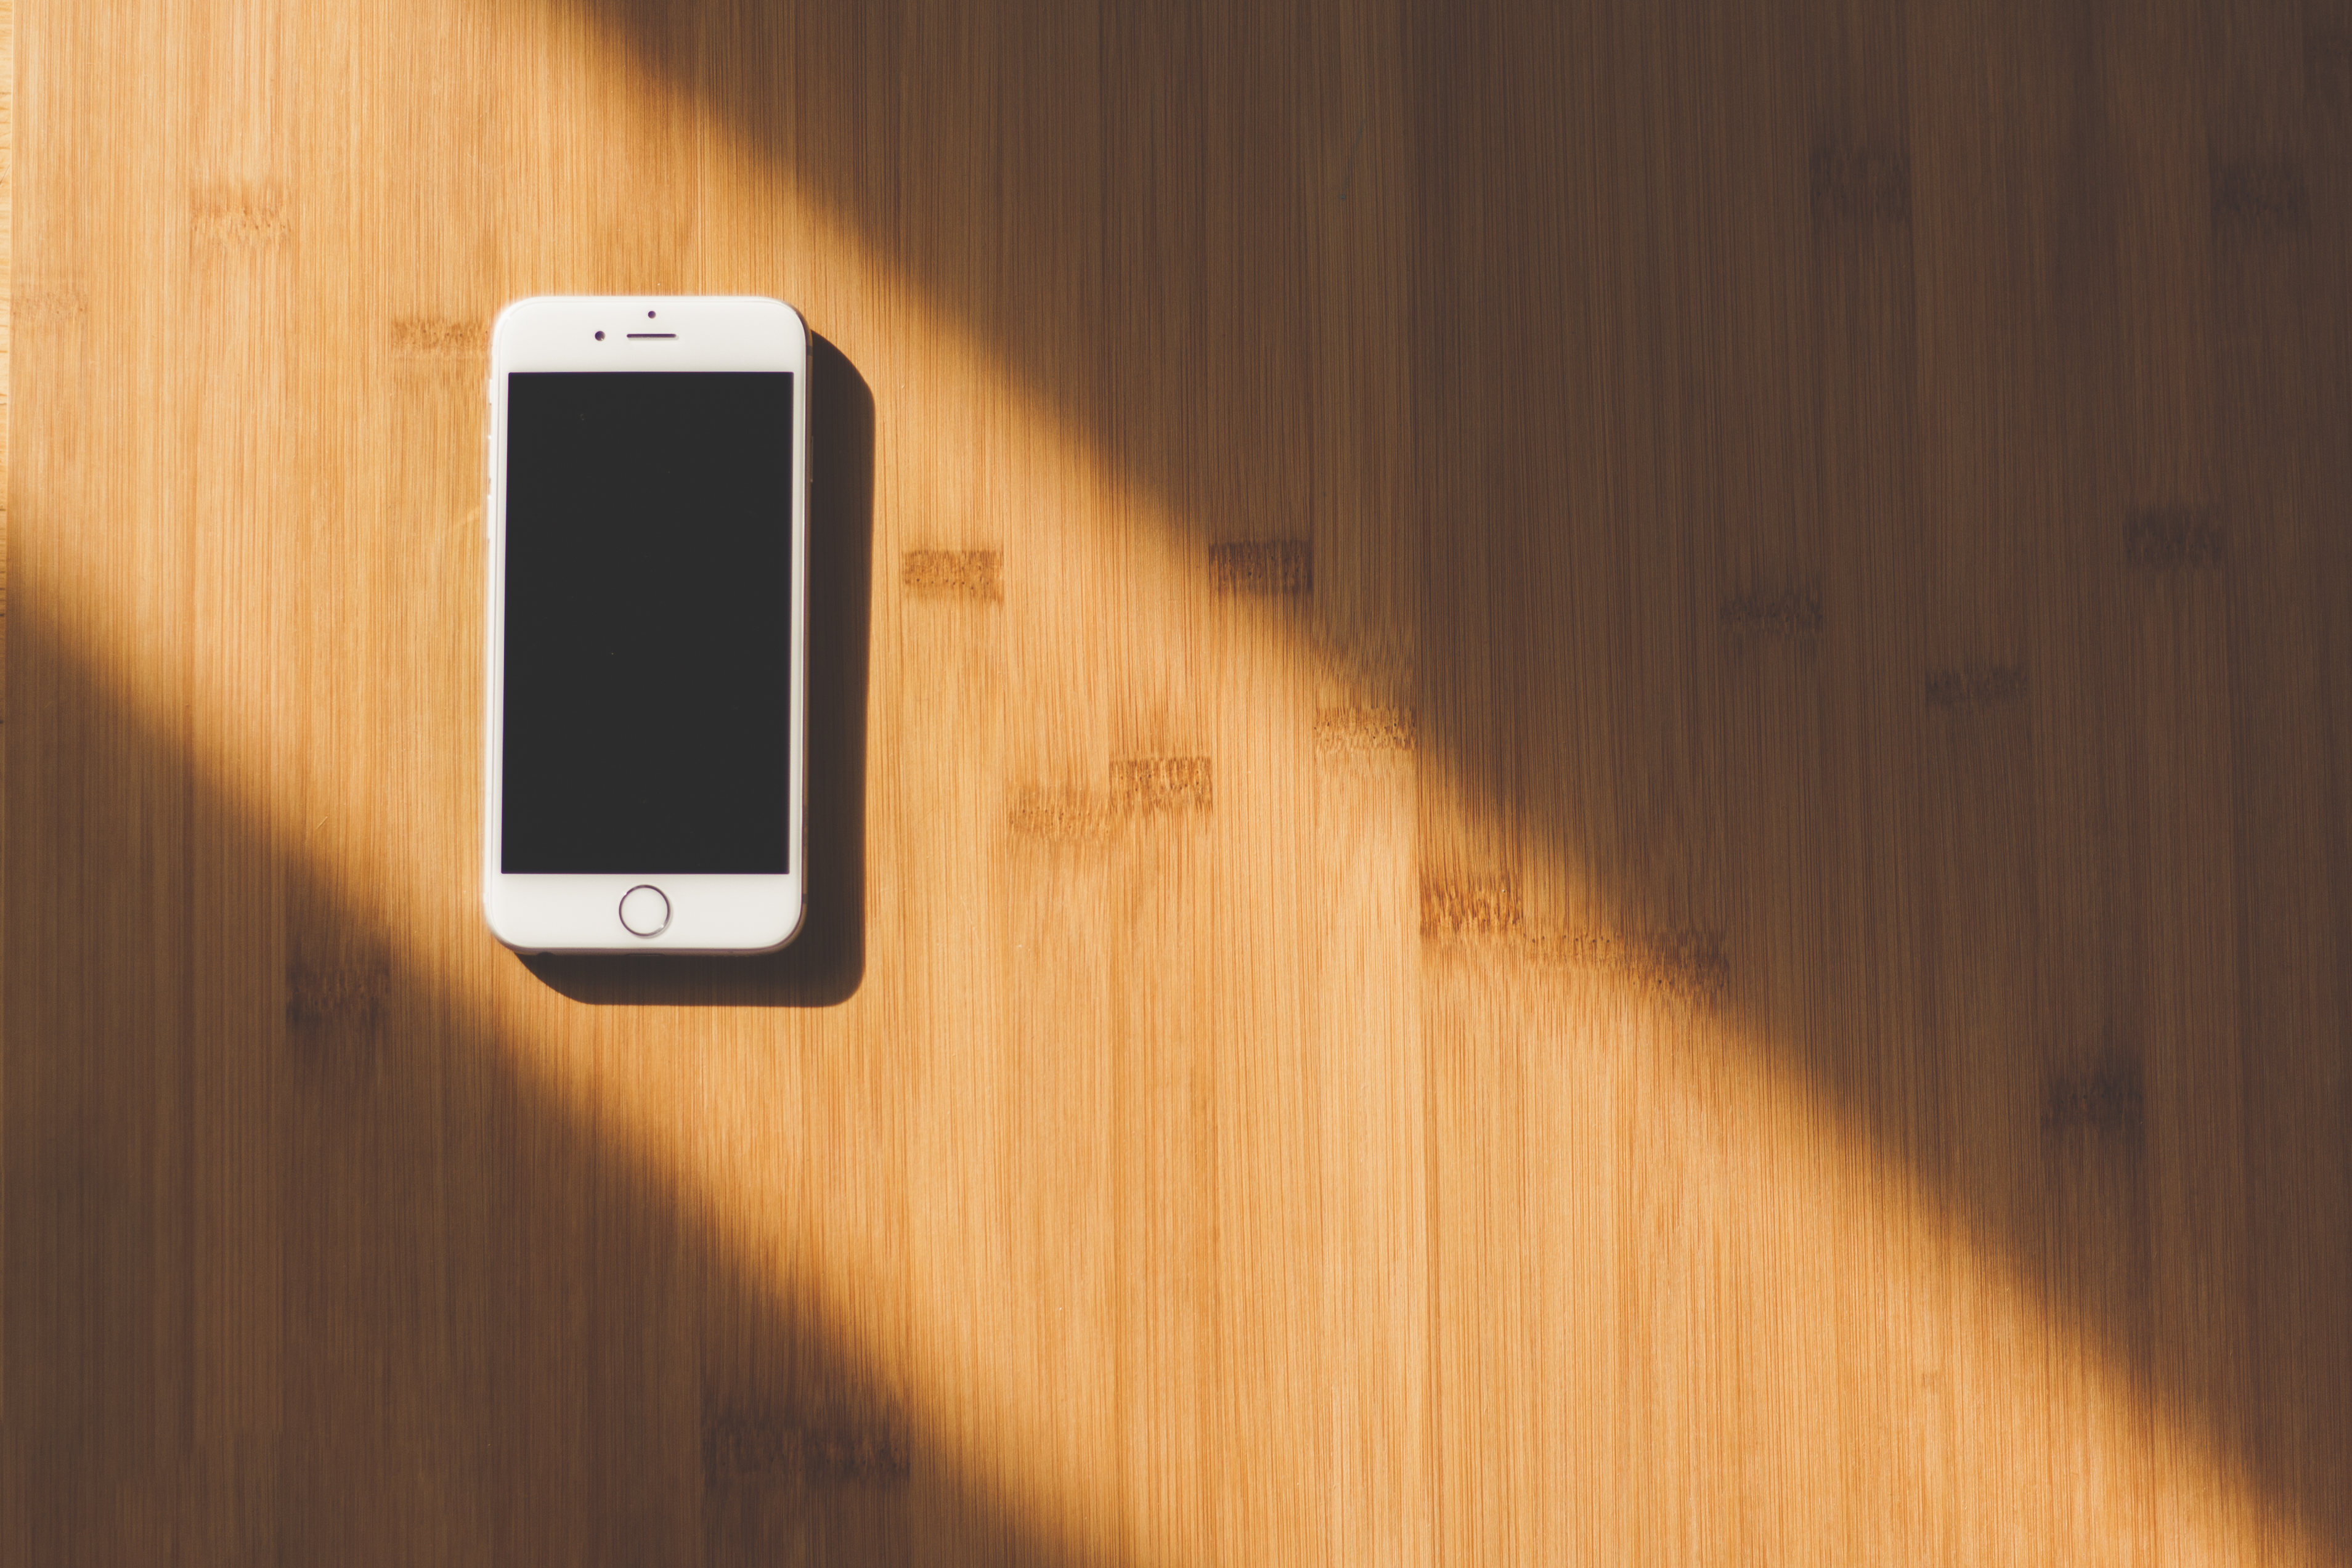 iPhone device on a wooden desk